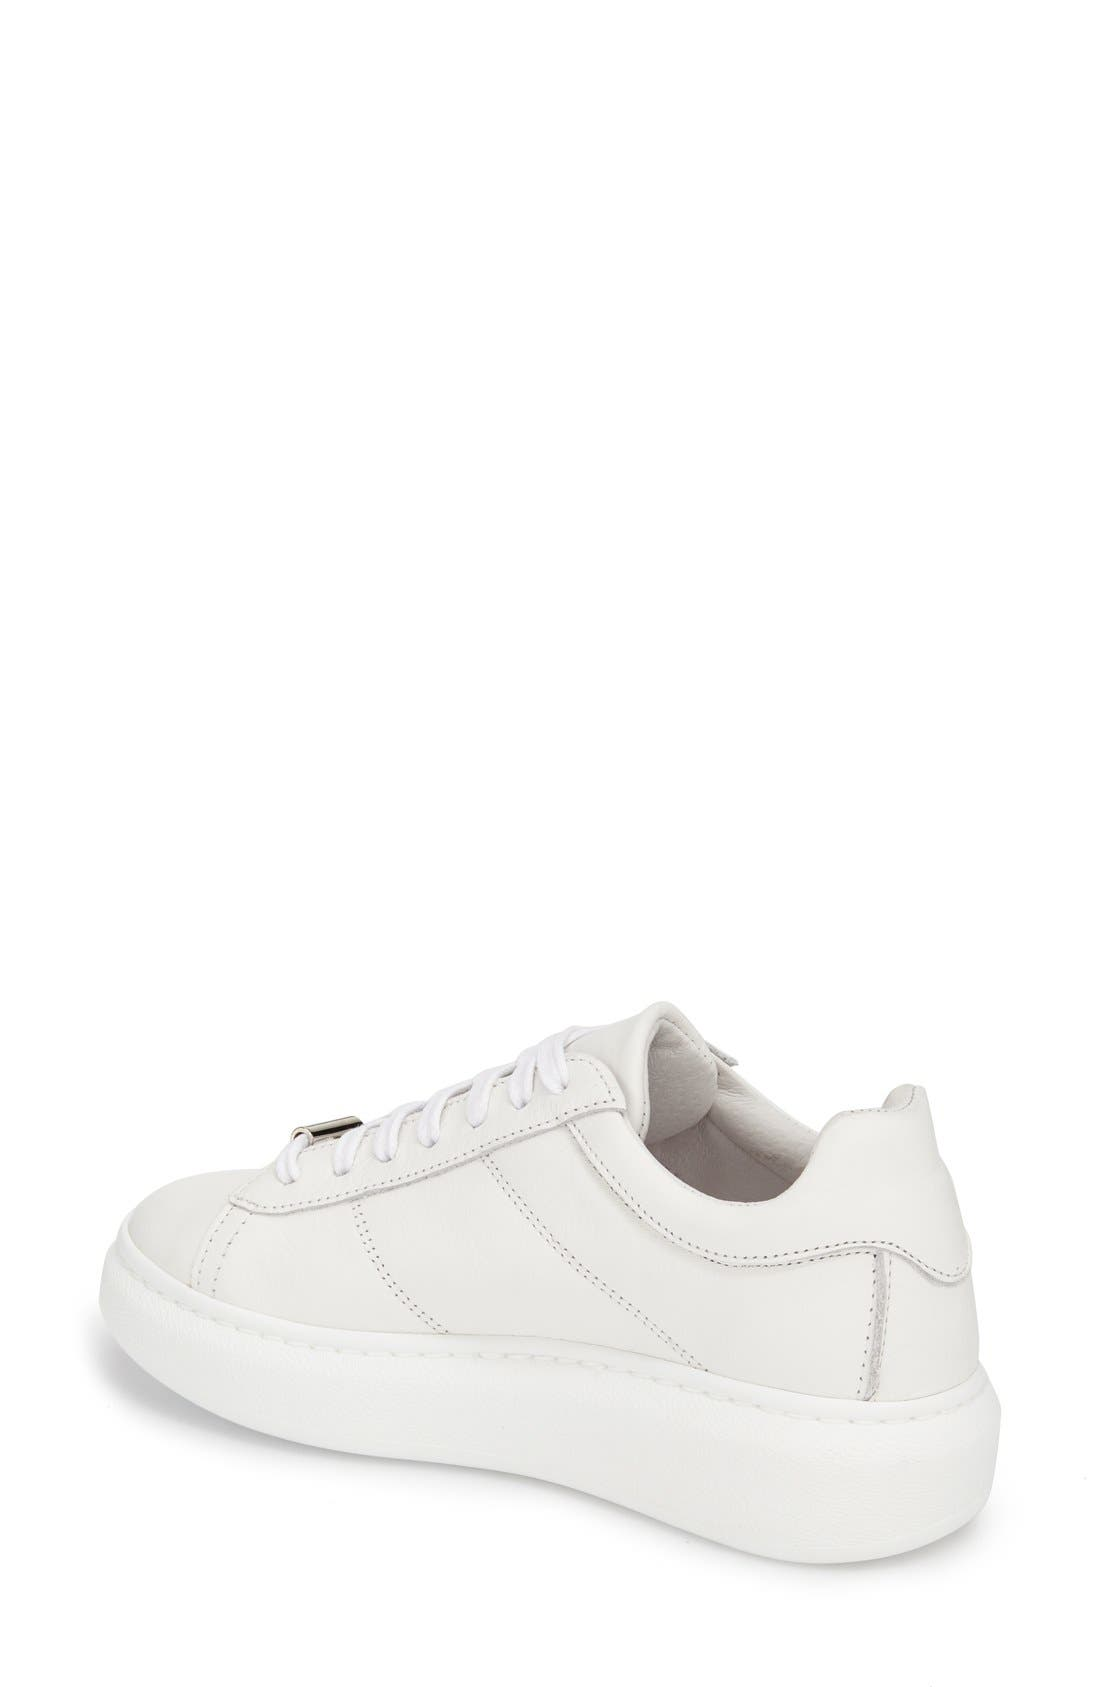 Alternate Image 2  - Topshop 'Toulouse' Leather Sneaker (Women)